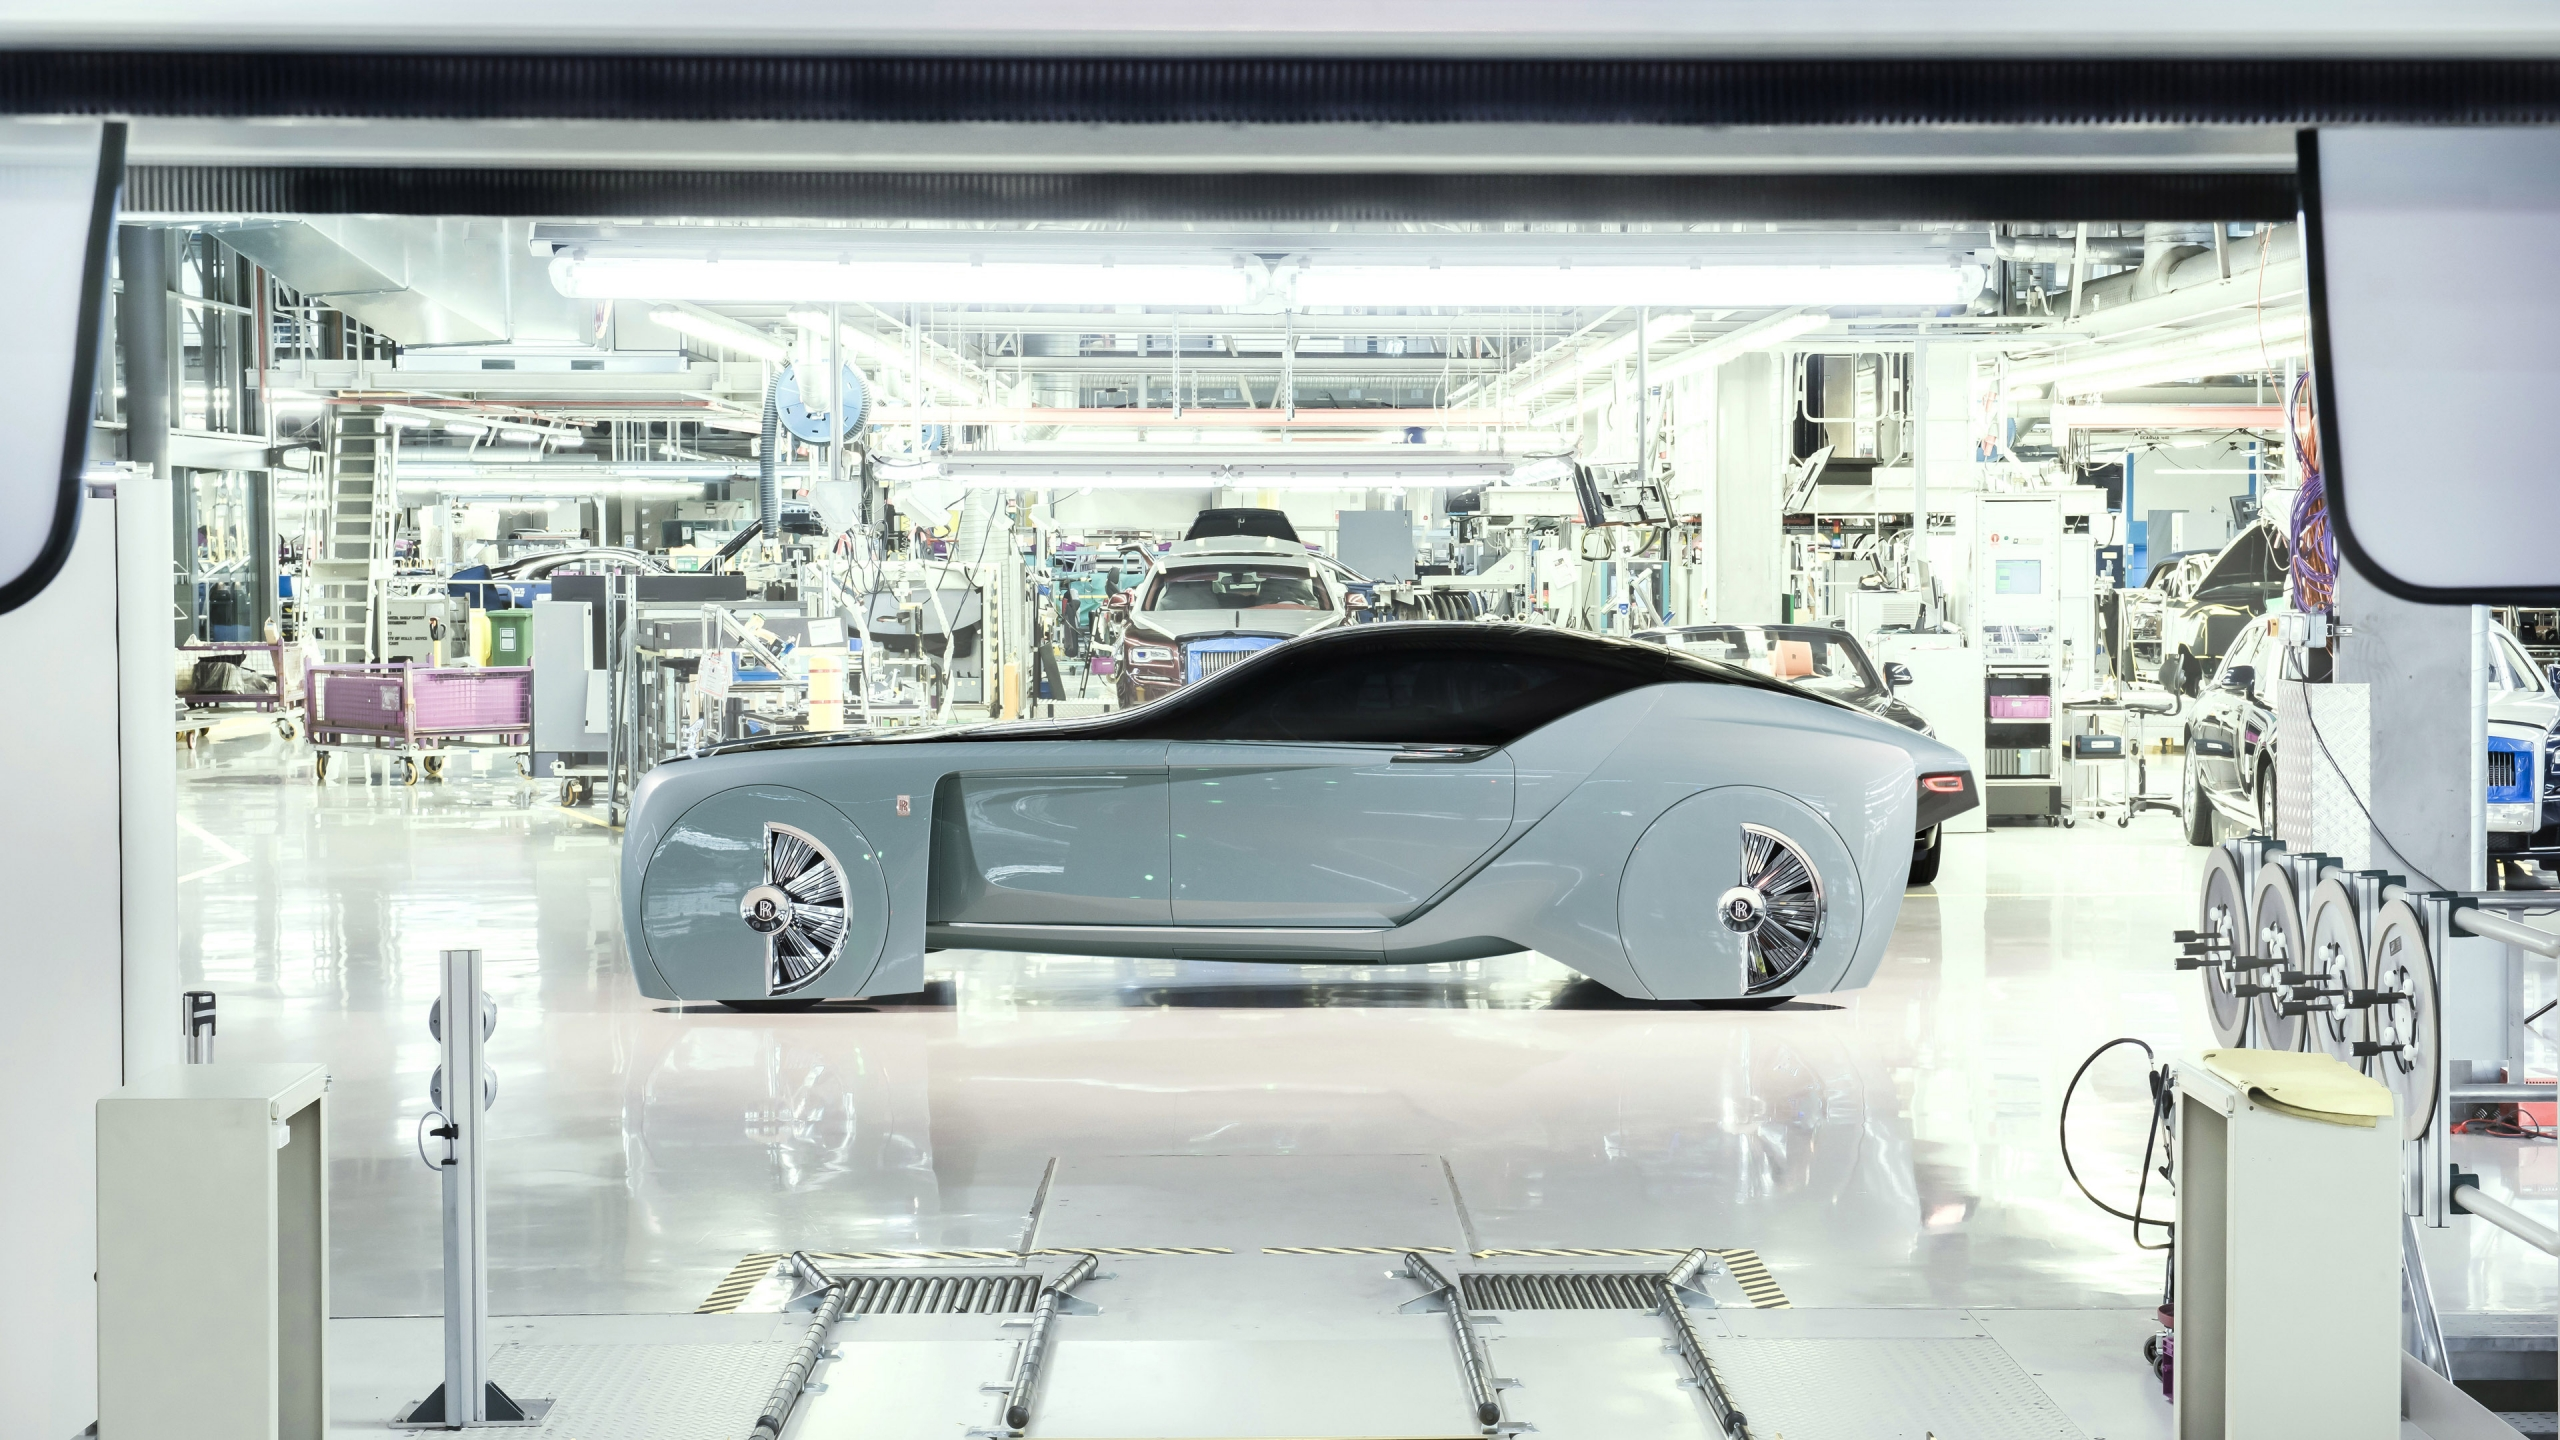 Rolls-Royce Vision Next 100 Concept 2016 - Photo 06 - Taille: 2560x1440